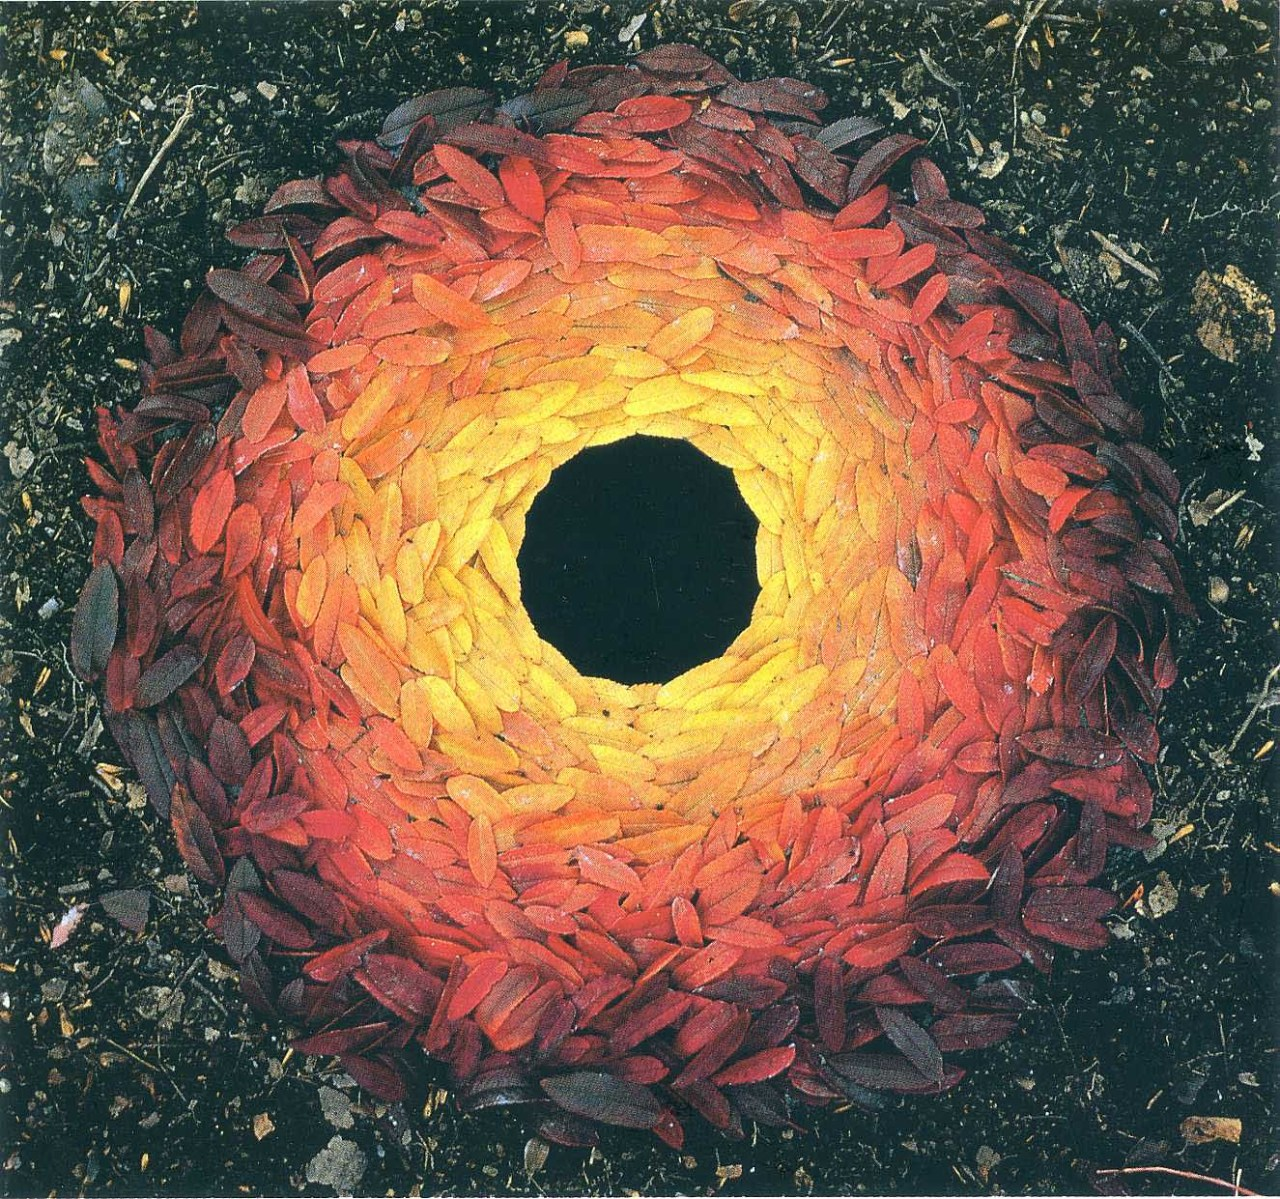 Andy Goldsworty